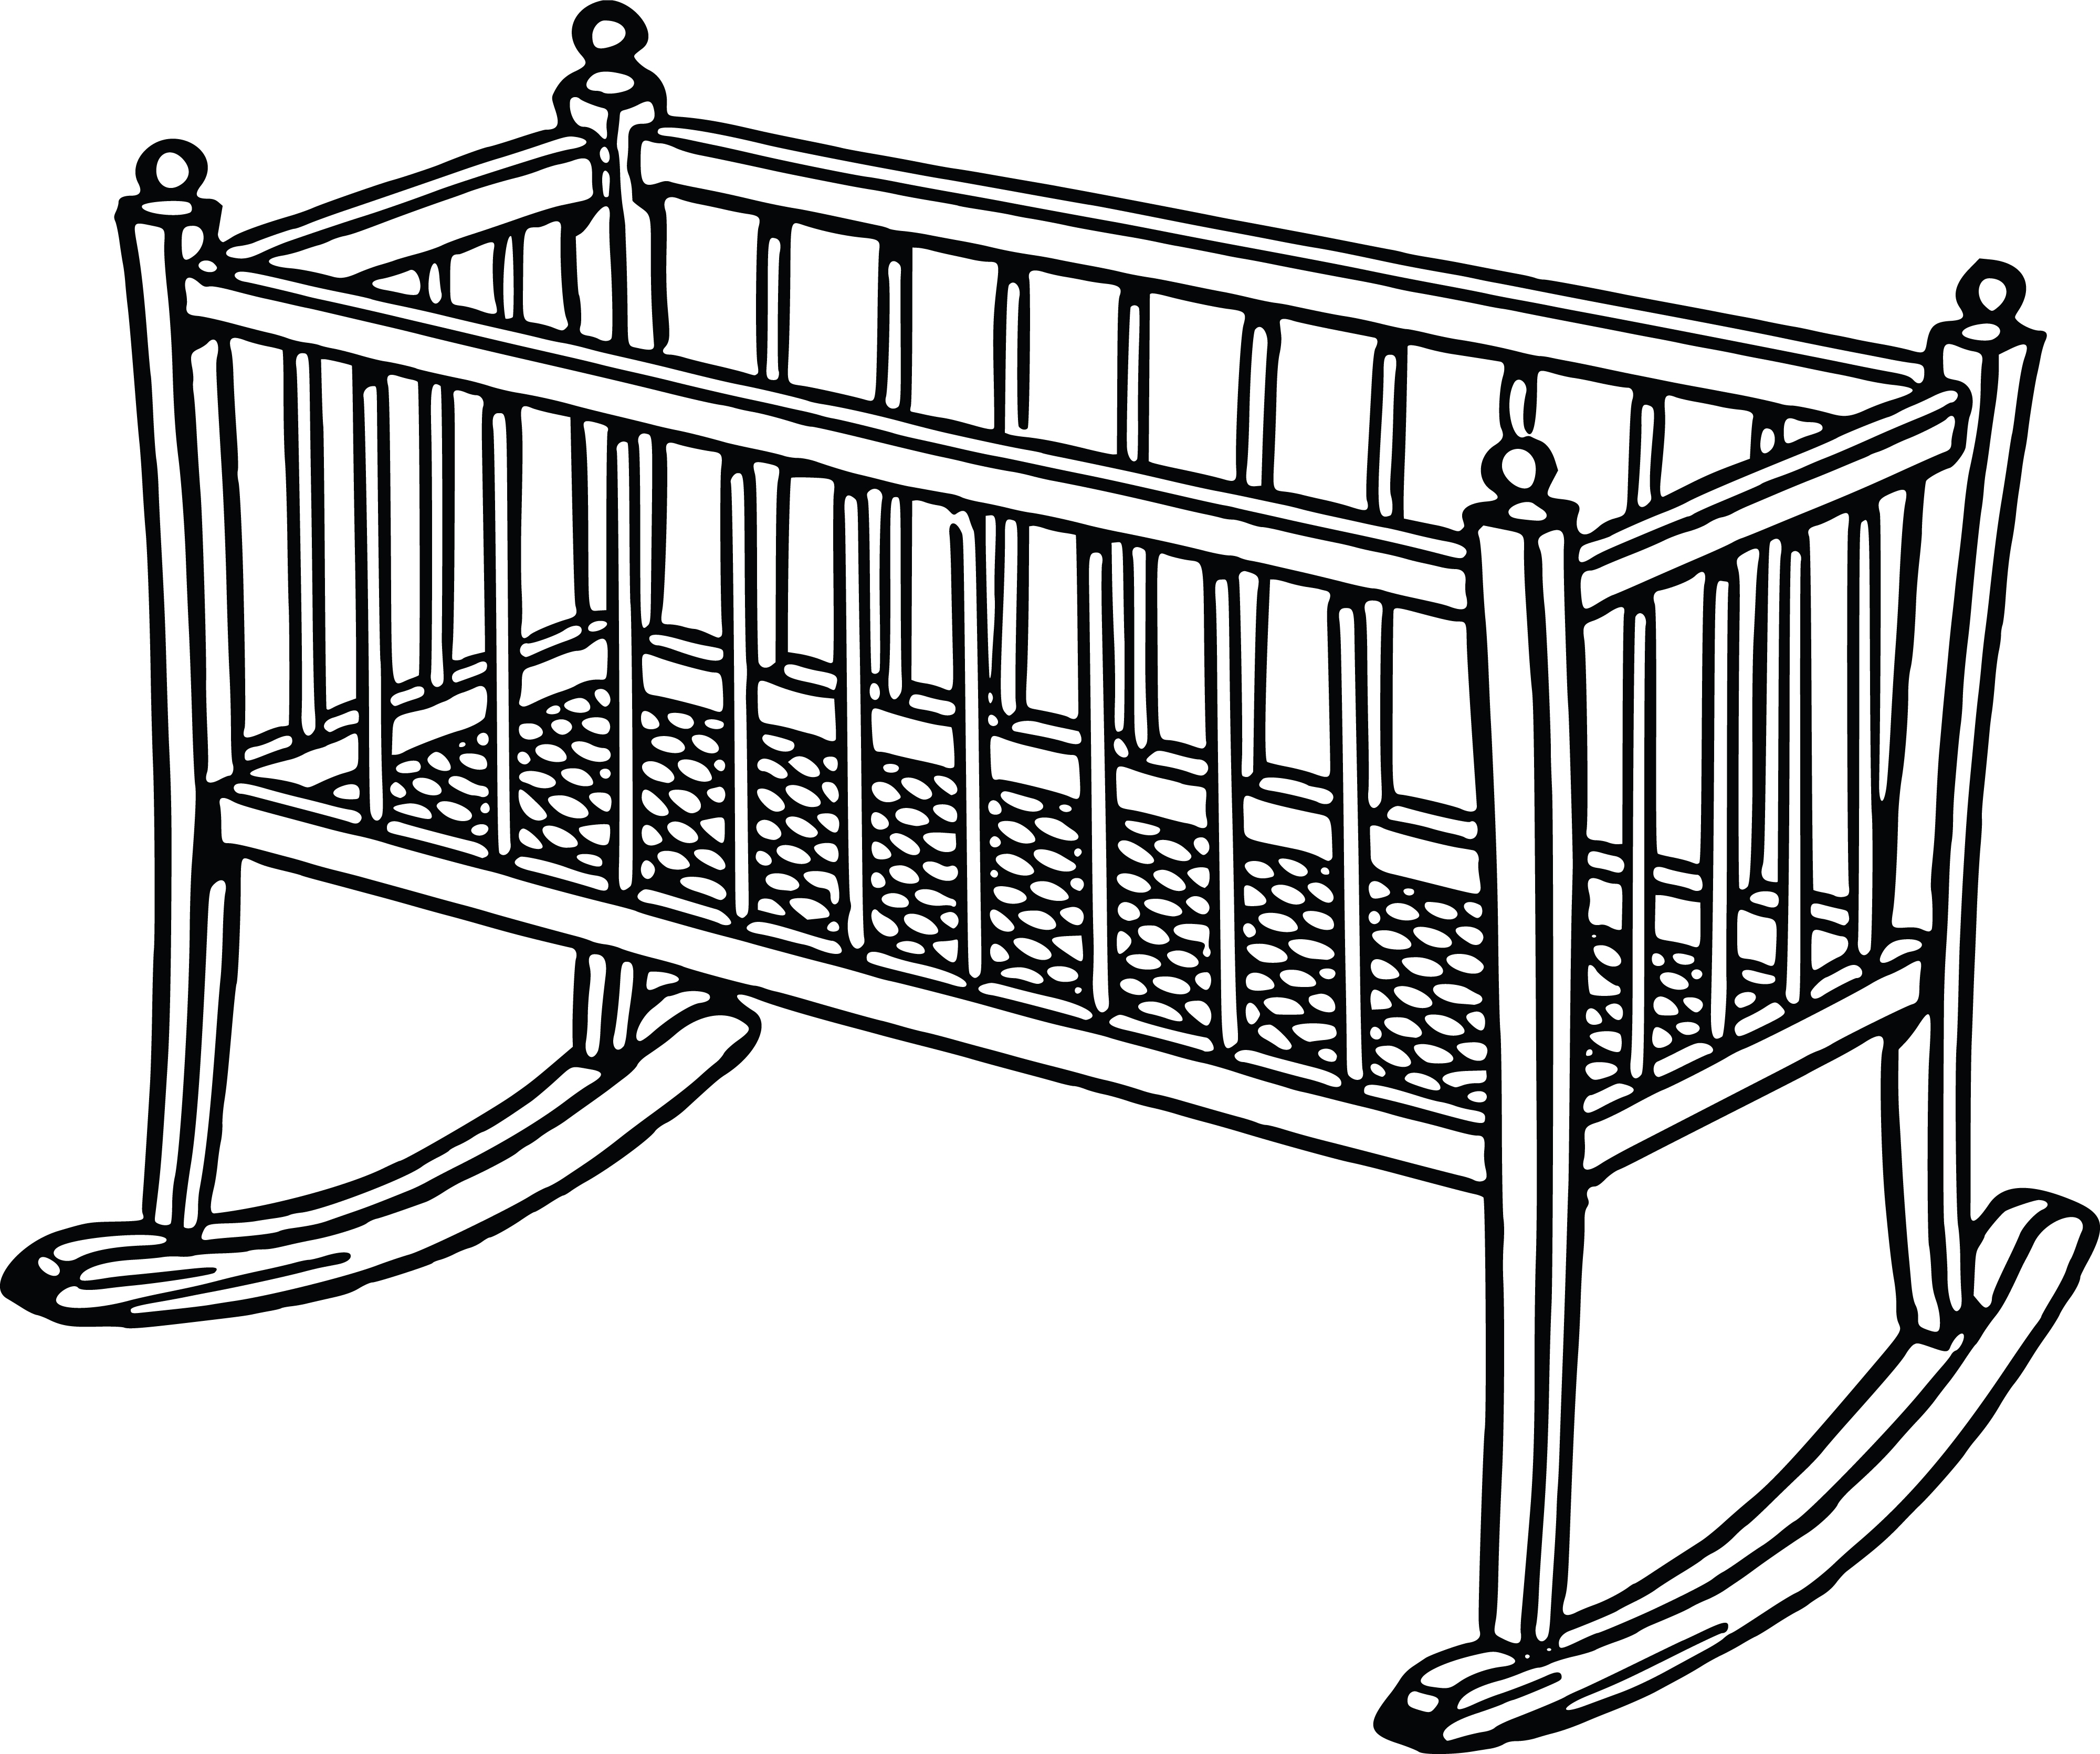 Free Clipart Of A Baby Crib.